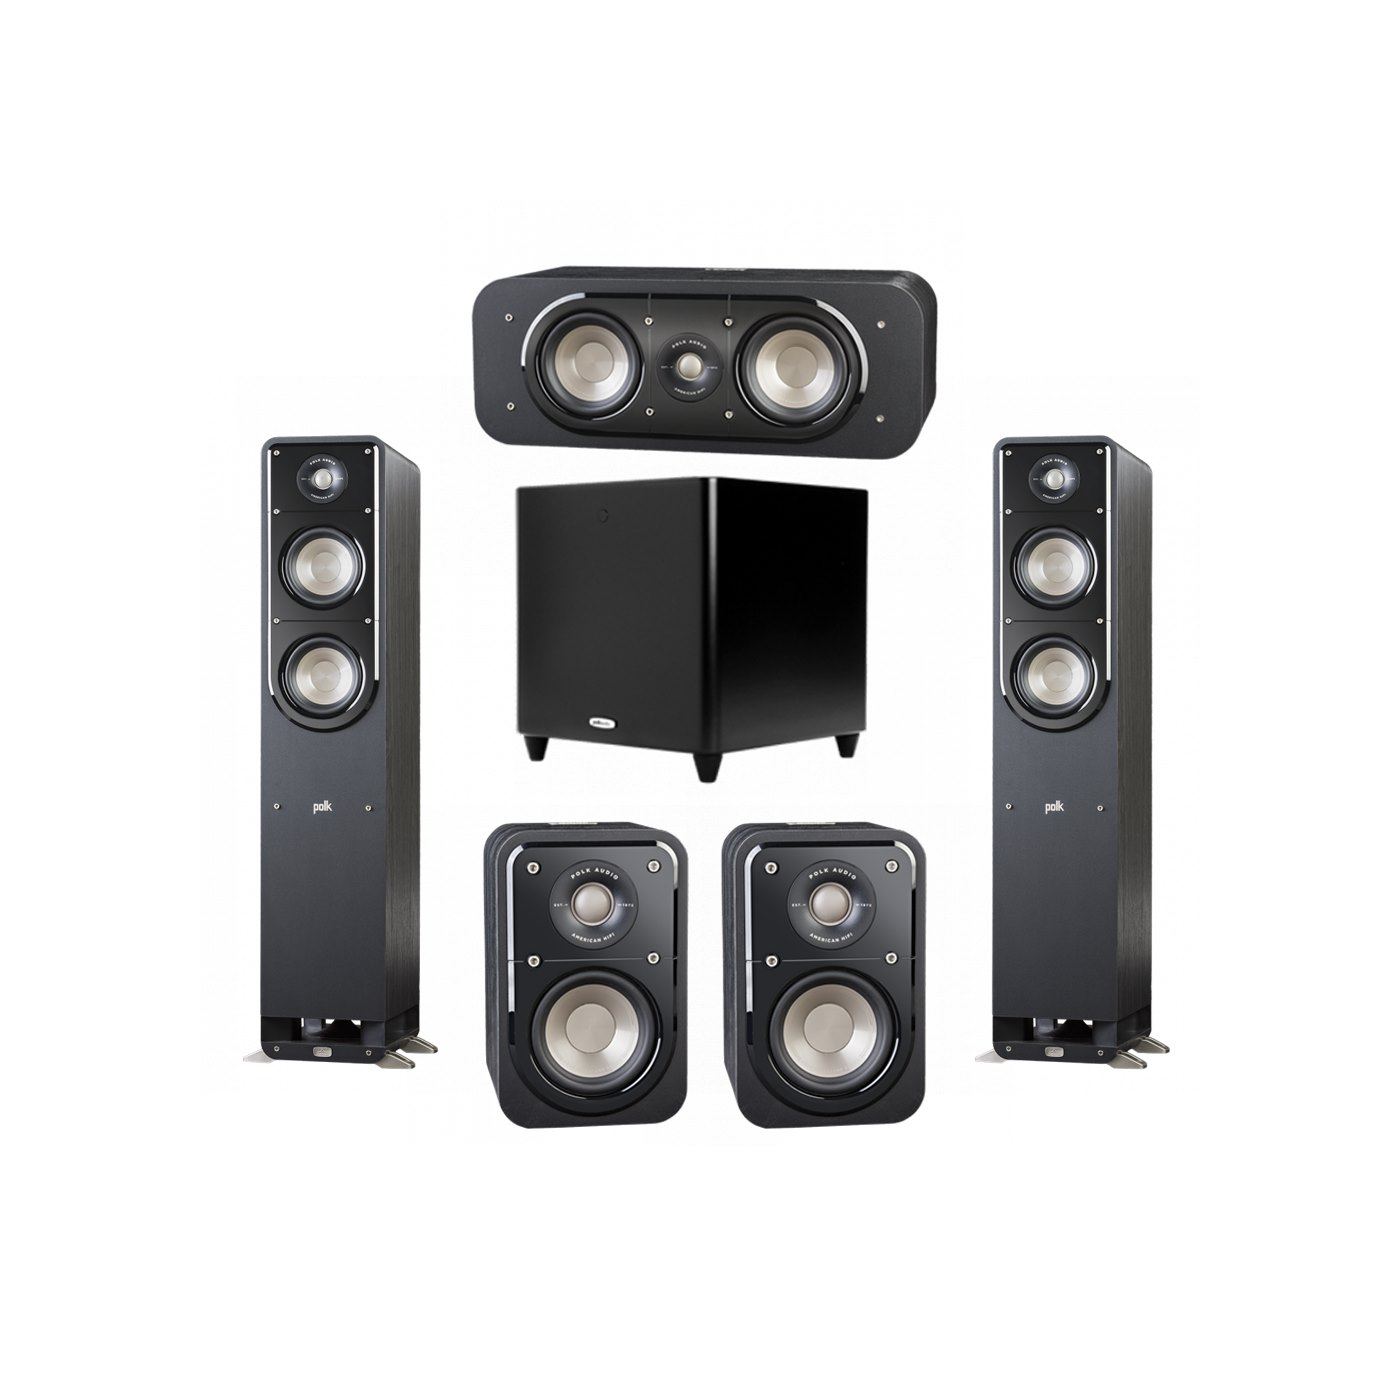 Polk Audio Signature 5.1 System with 2 S50 Tower Speaker, 1 Polk S30 Center Speaker, 2 Polk S10 Surround Speaker, 1 Polk DSW PRO 660 wi Subwoofer